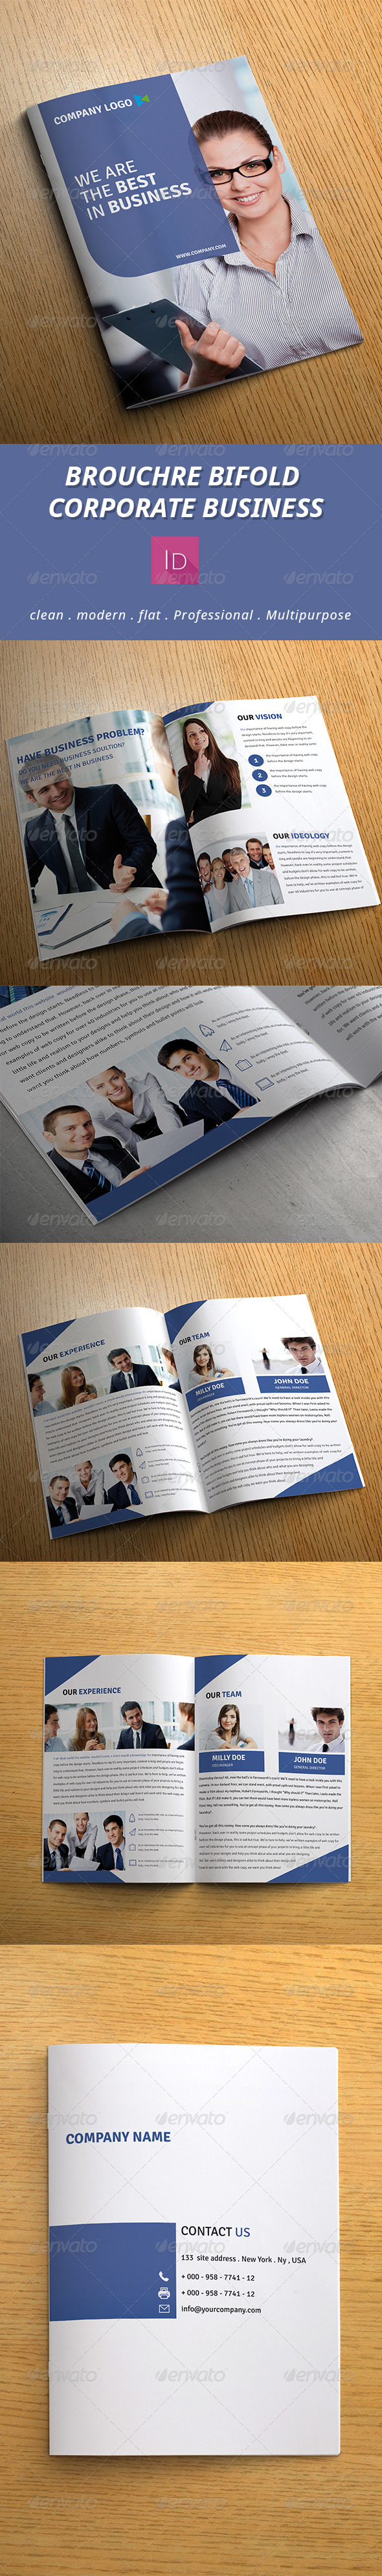 GraphicRiver Brouchre Bifold Corporate Business 7586071